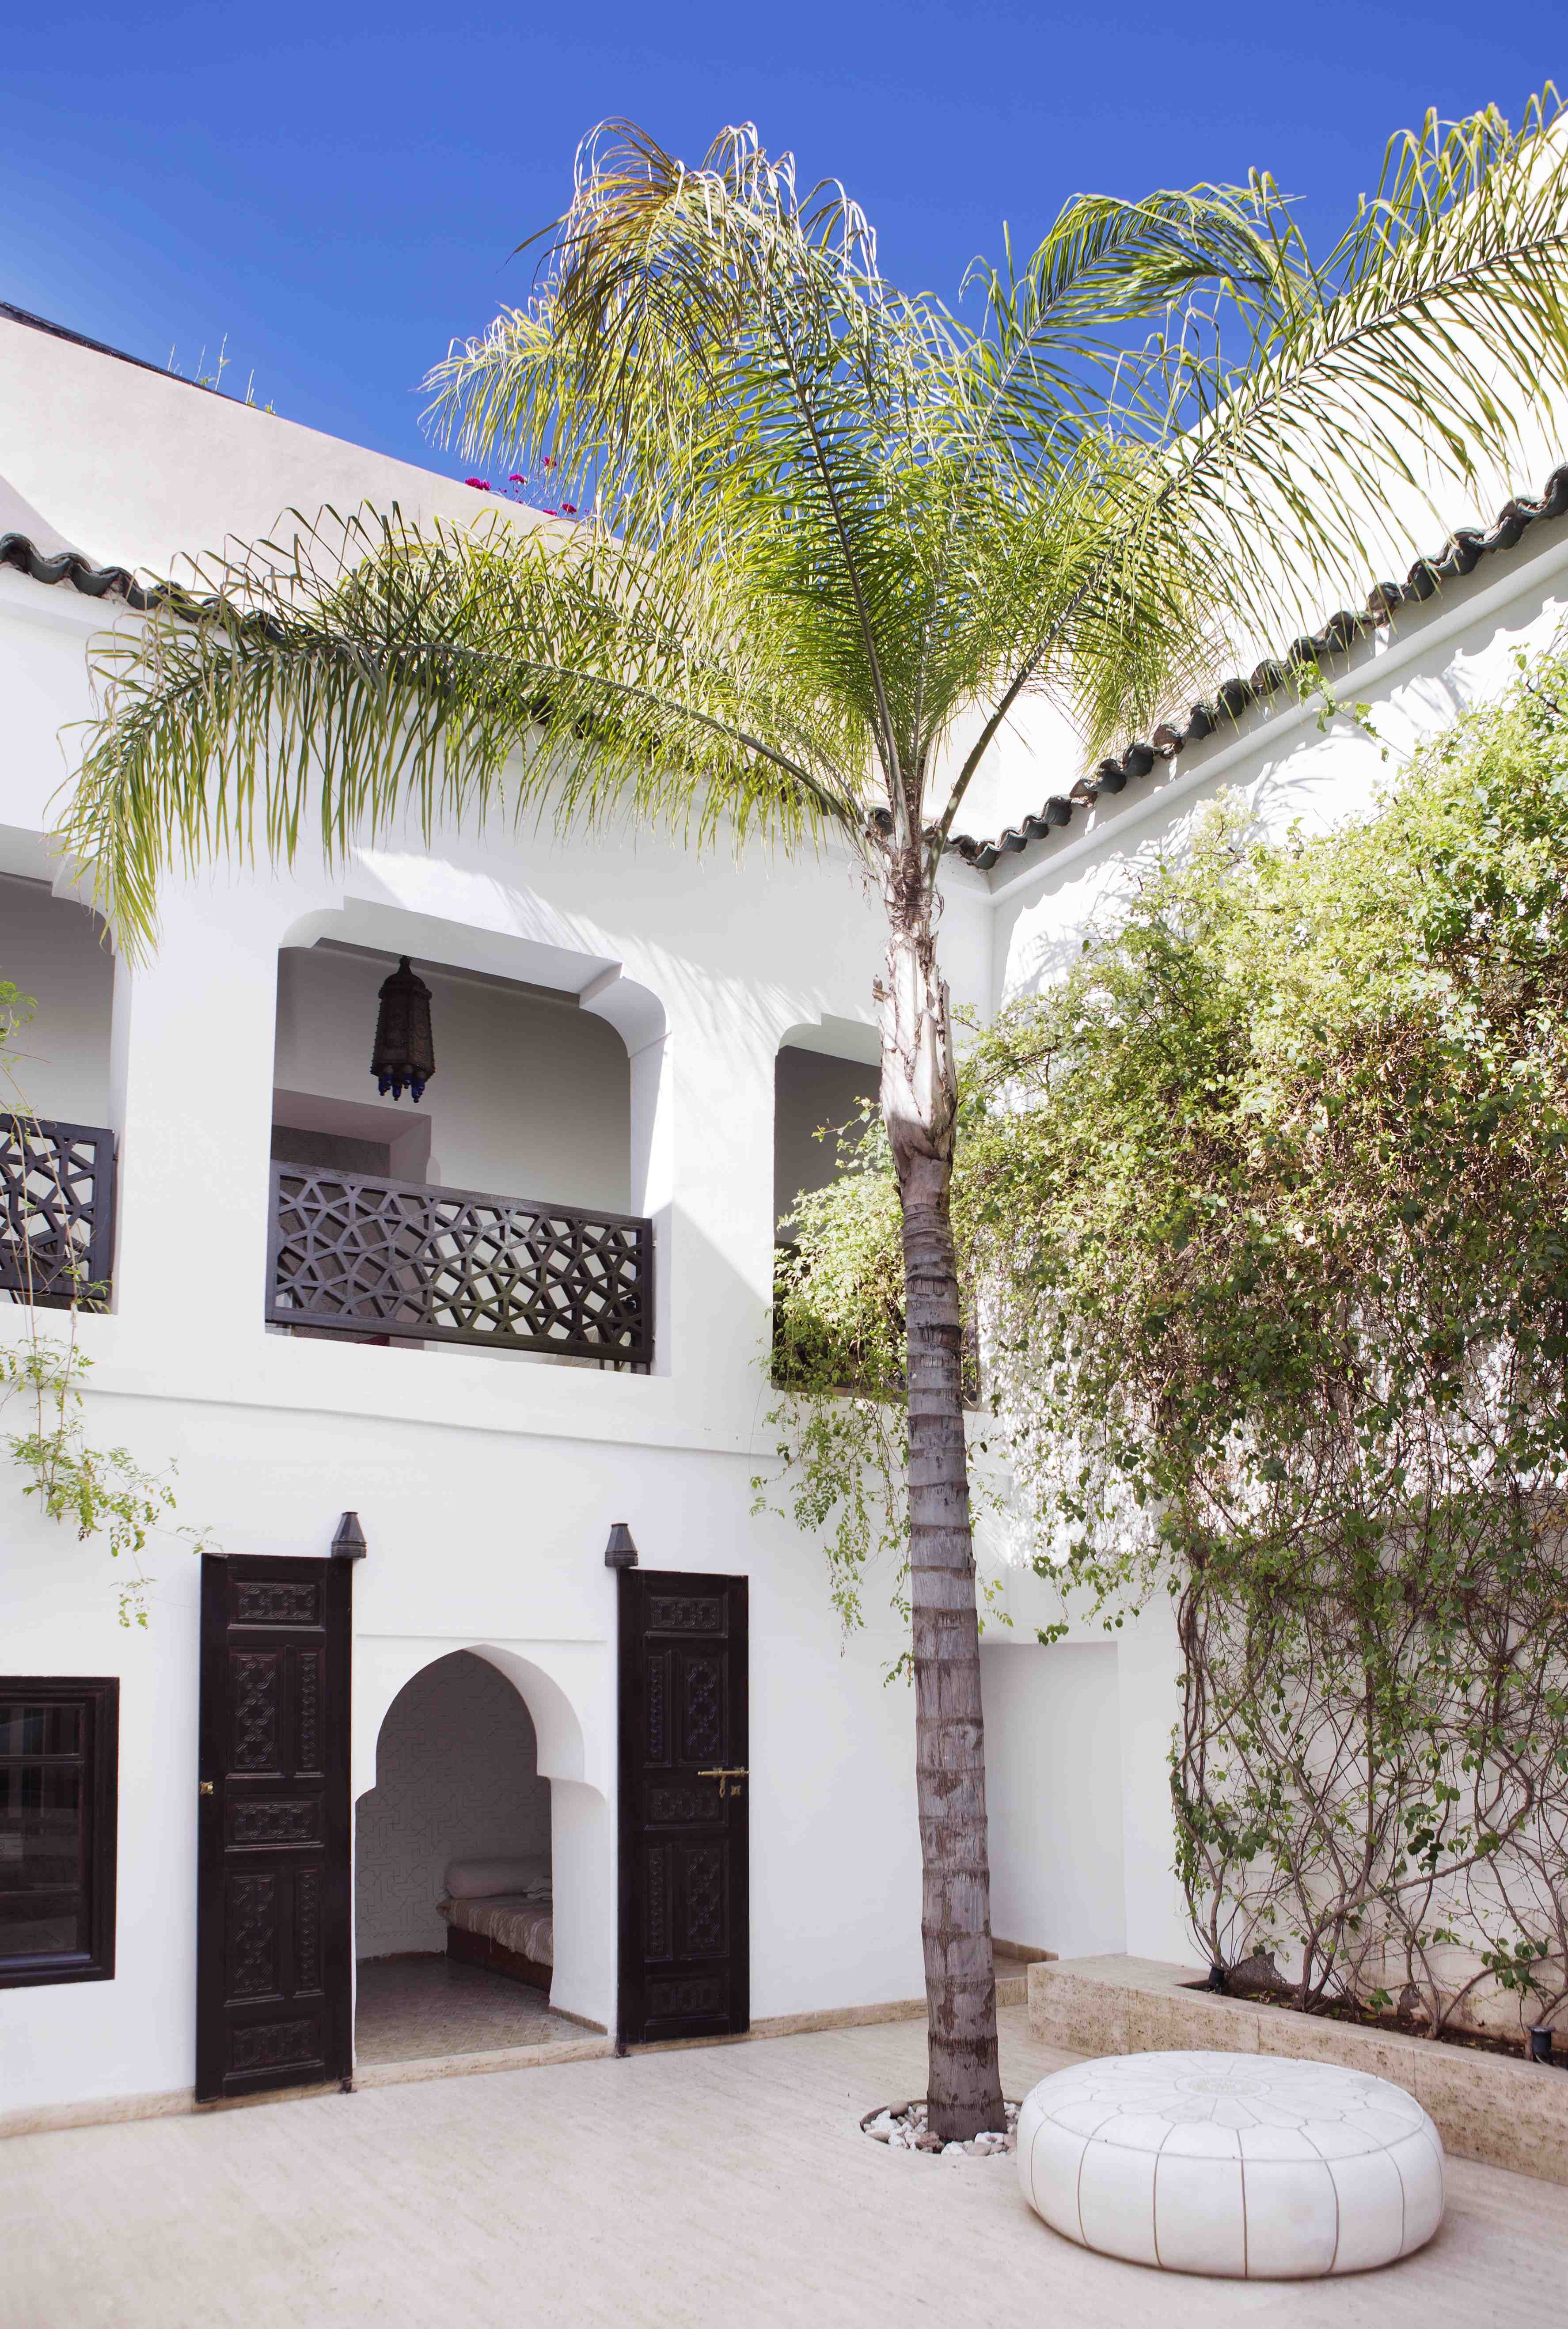 Maison Maroc Moroccan Courtyard Trees Outdoors White Walls Espresso